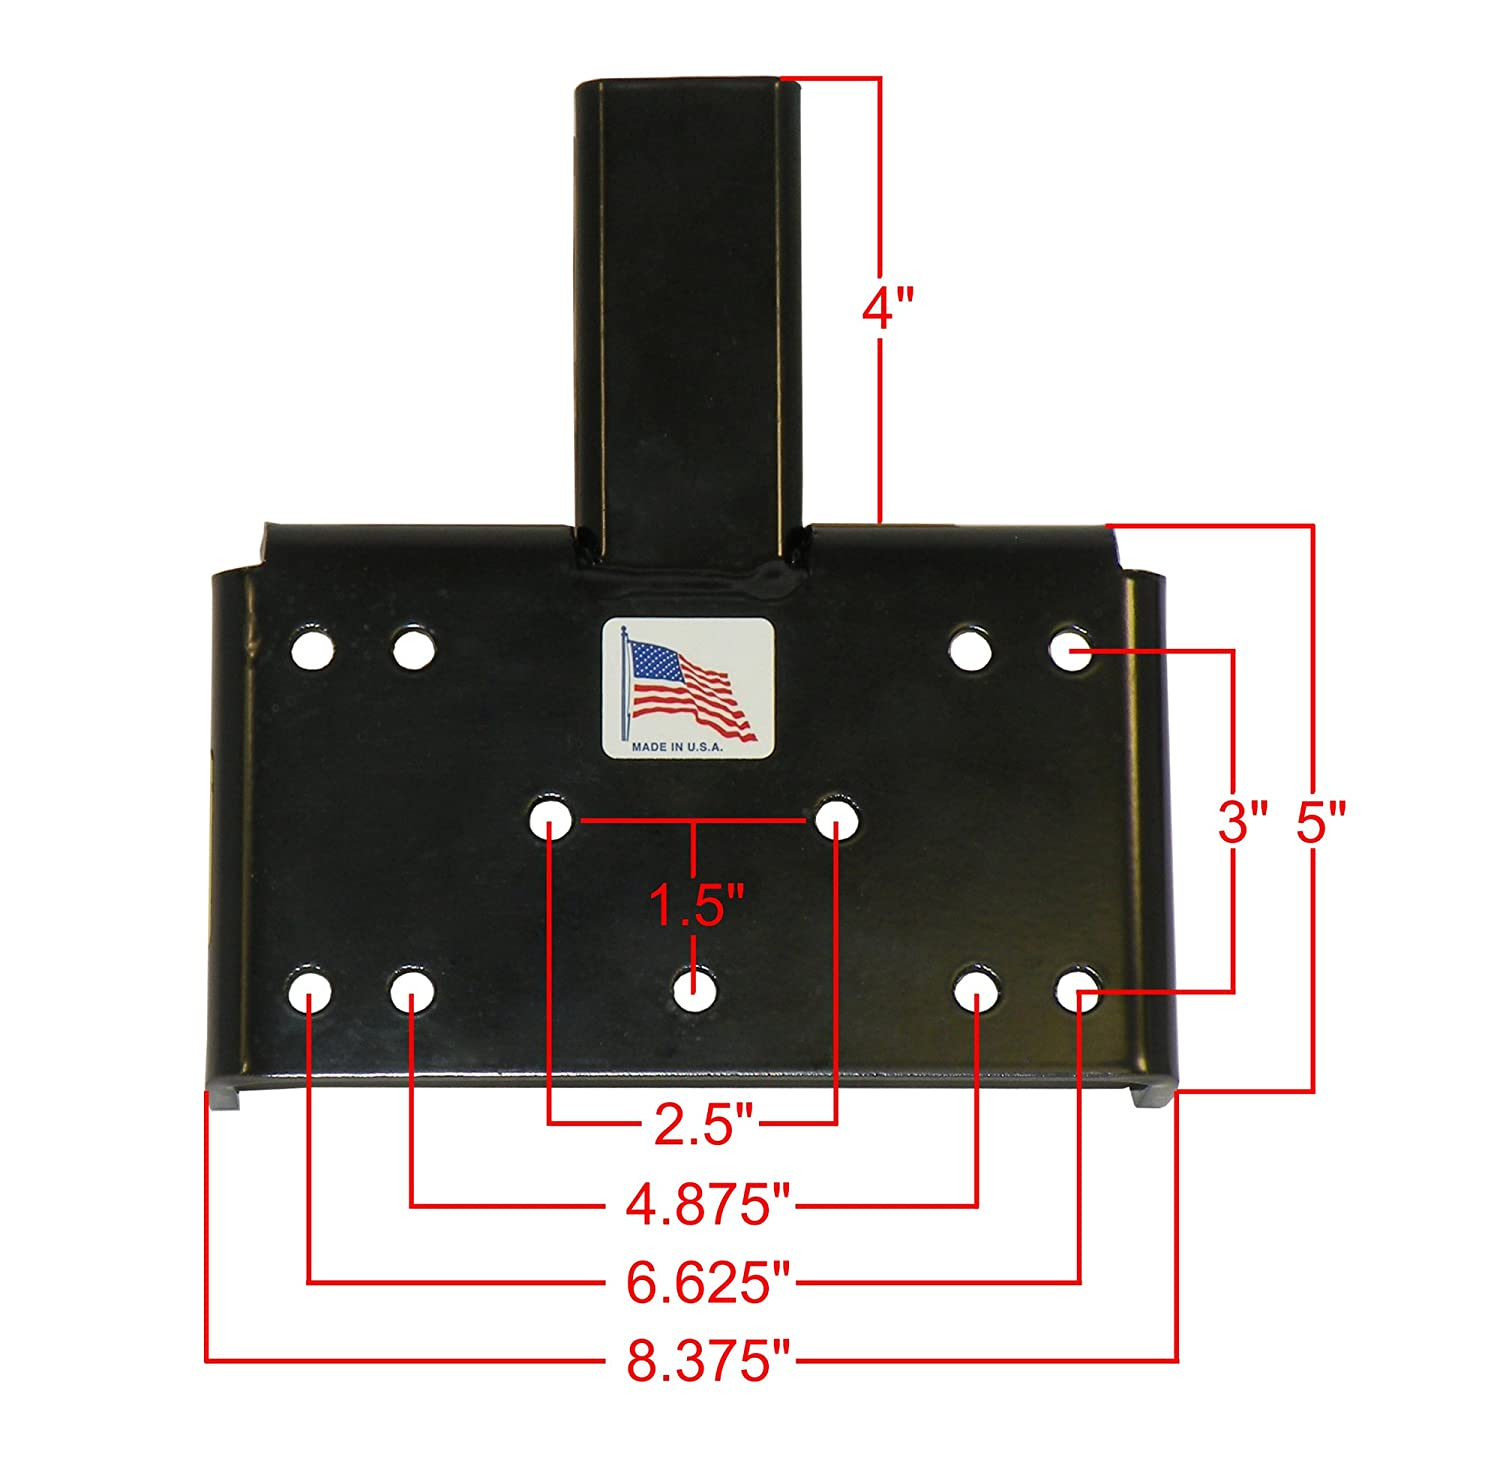 Amazon.com: ATV/UTV Winch Mounting Plate For 2 Inch Receivers - Made In  U.S.A.: Automotive